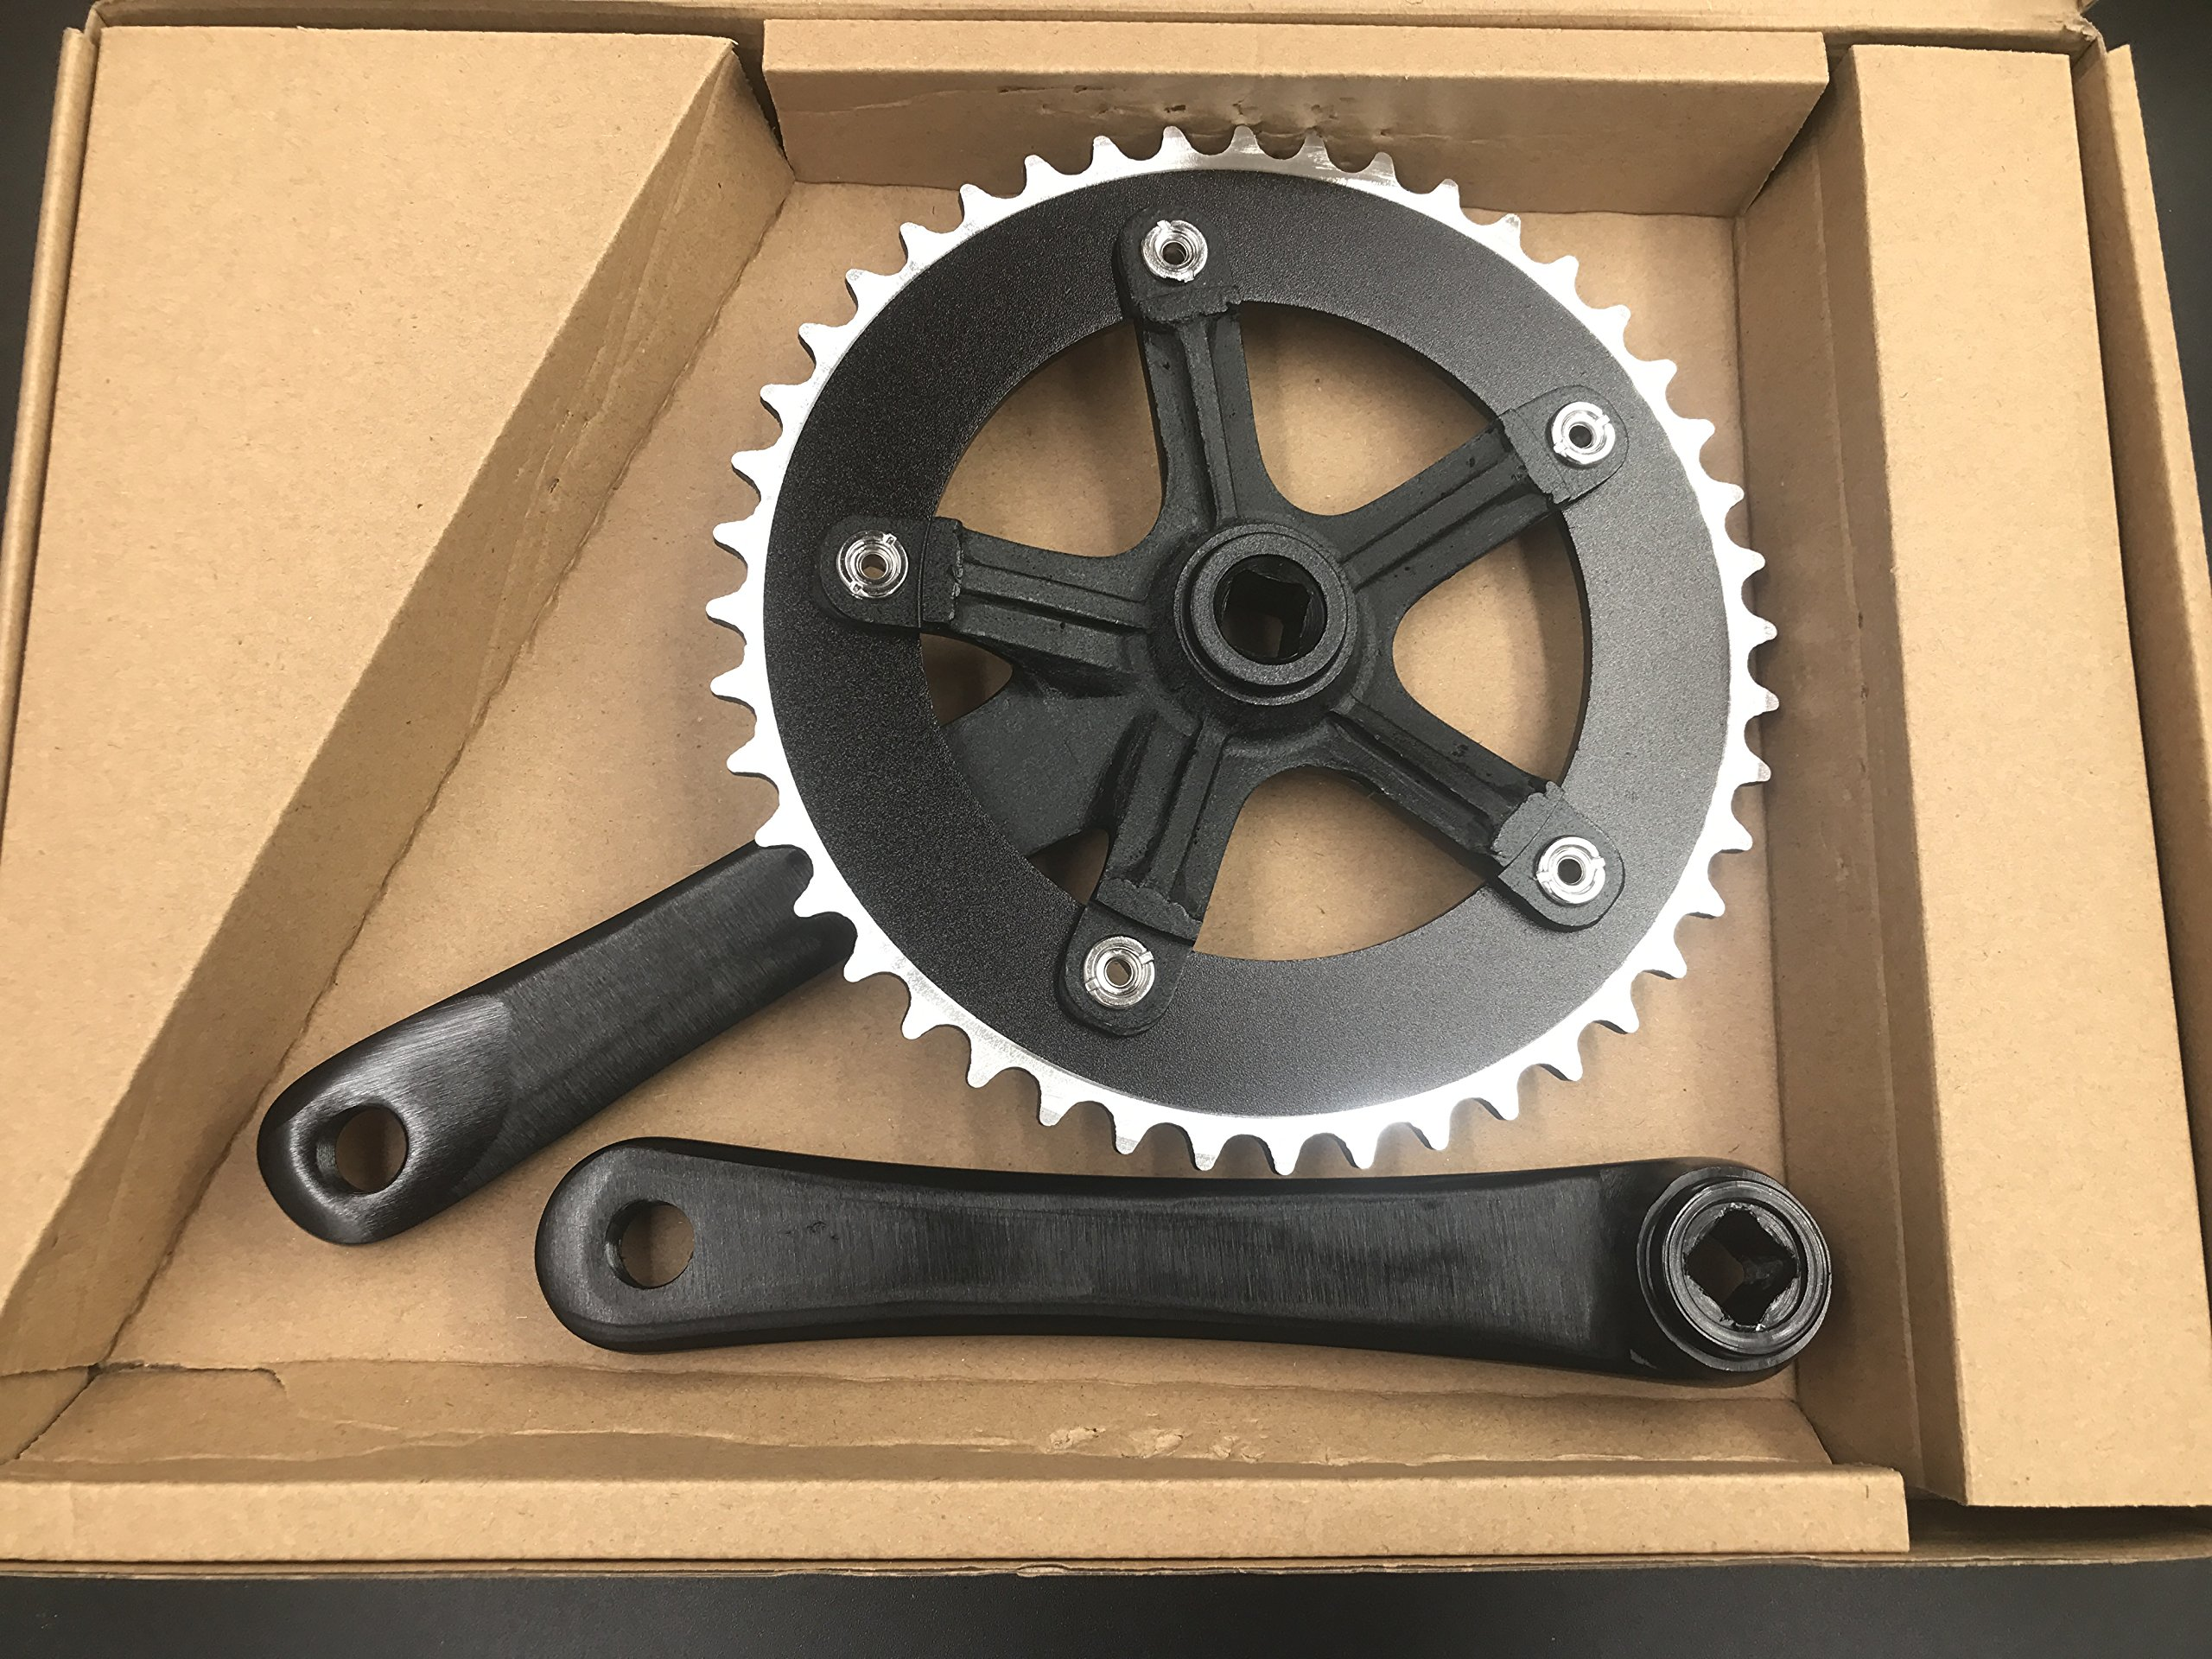 Single Speed Crankset 44T 165mm Crankarms 130 BCD Crankset for Mountain Road Bike Fixed Gear Bicycle(Square Taper, Black) (44T, Sprocket) by CDHPOWER (Image #2)